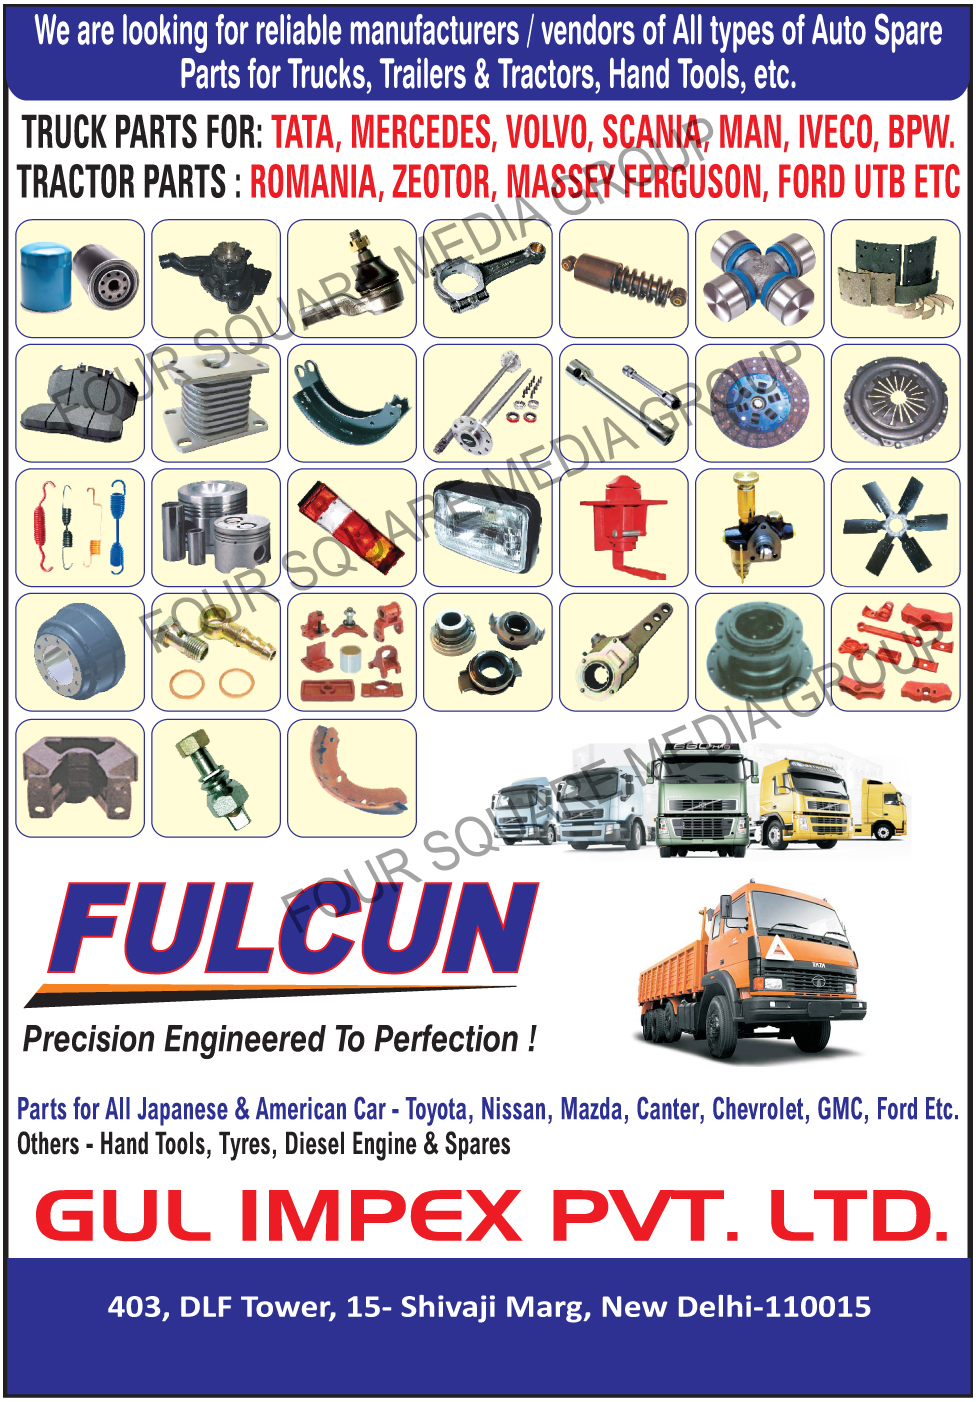 Truck Parts, Tractor Parts, Car Parts, Hand Tools, Tyres, Diesel Engines, Automotive Spare Parts